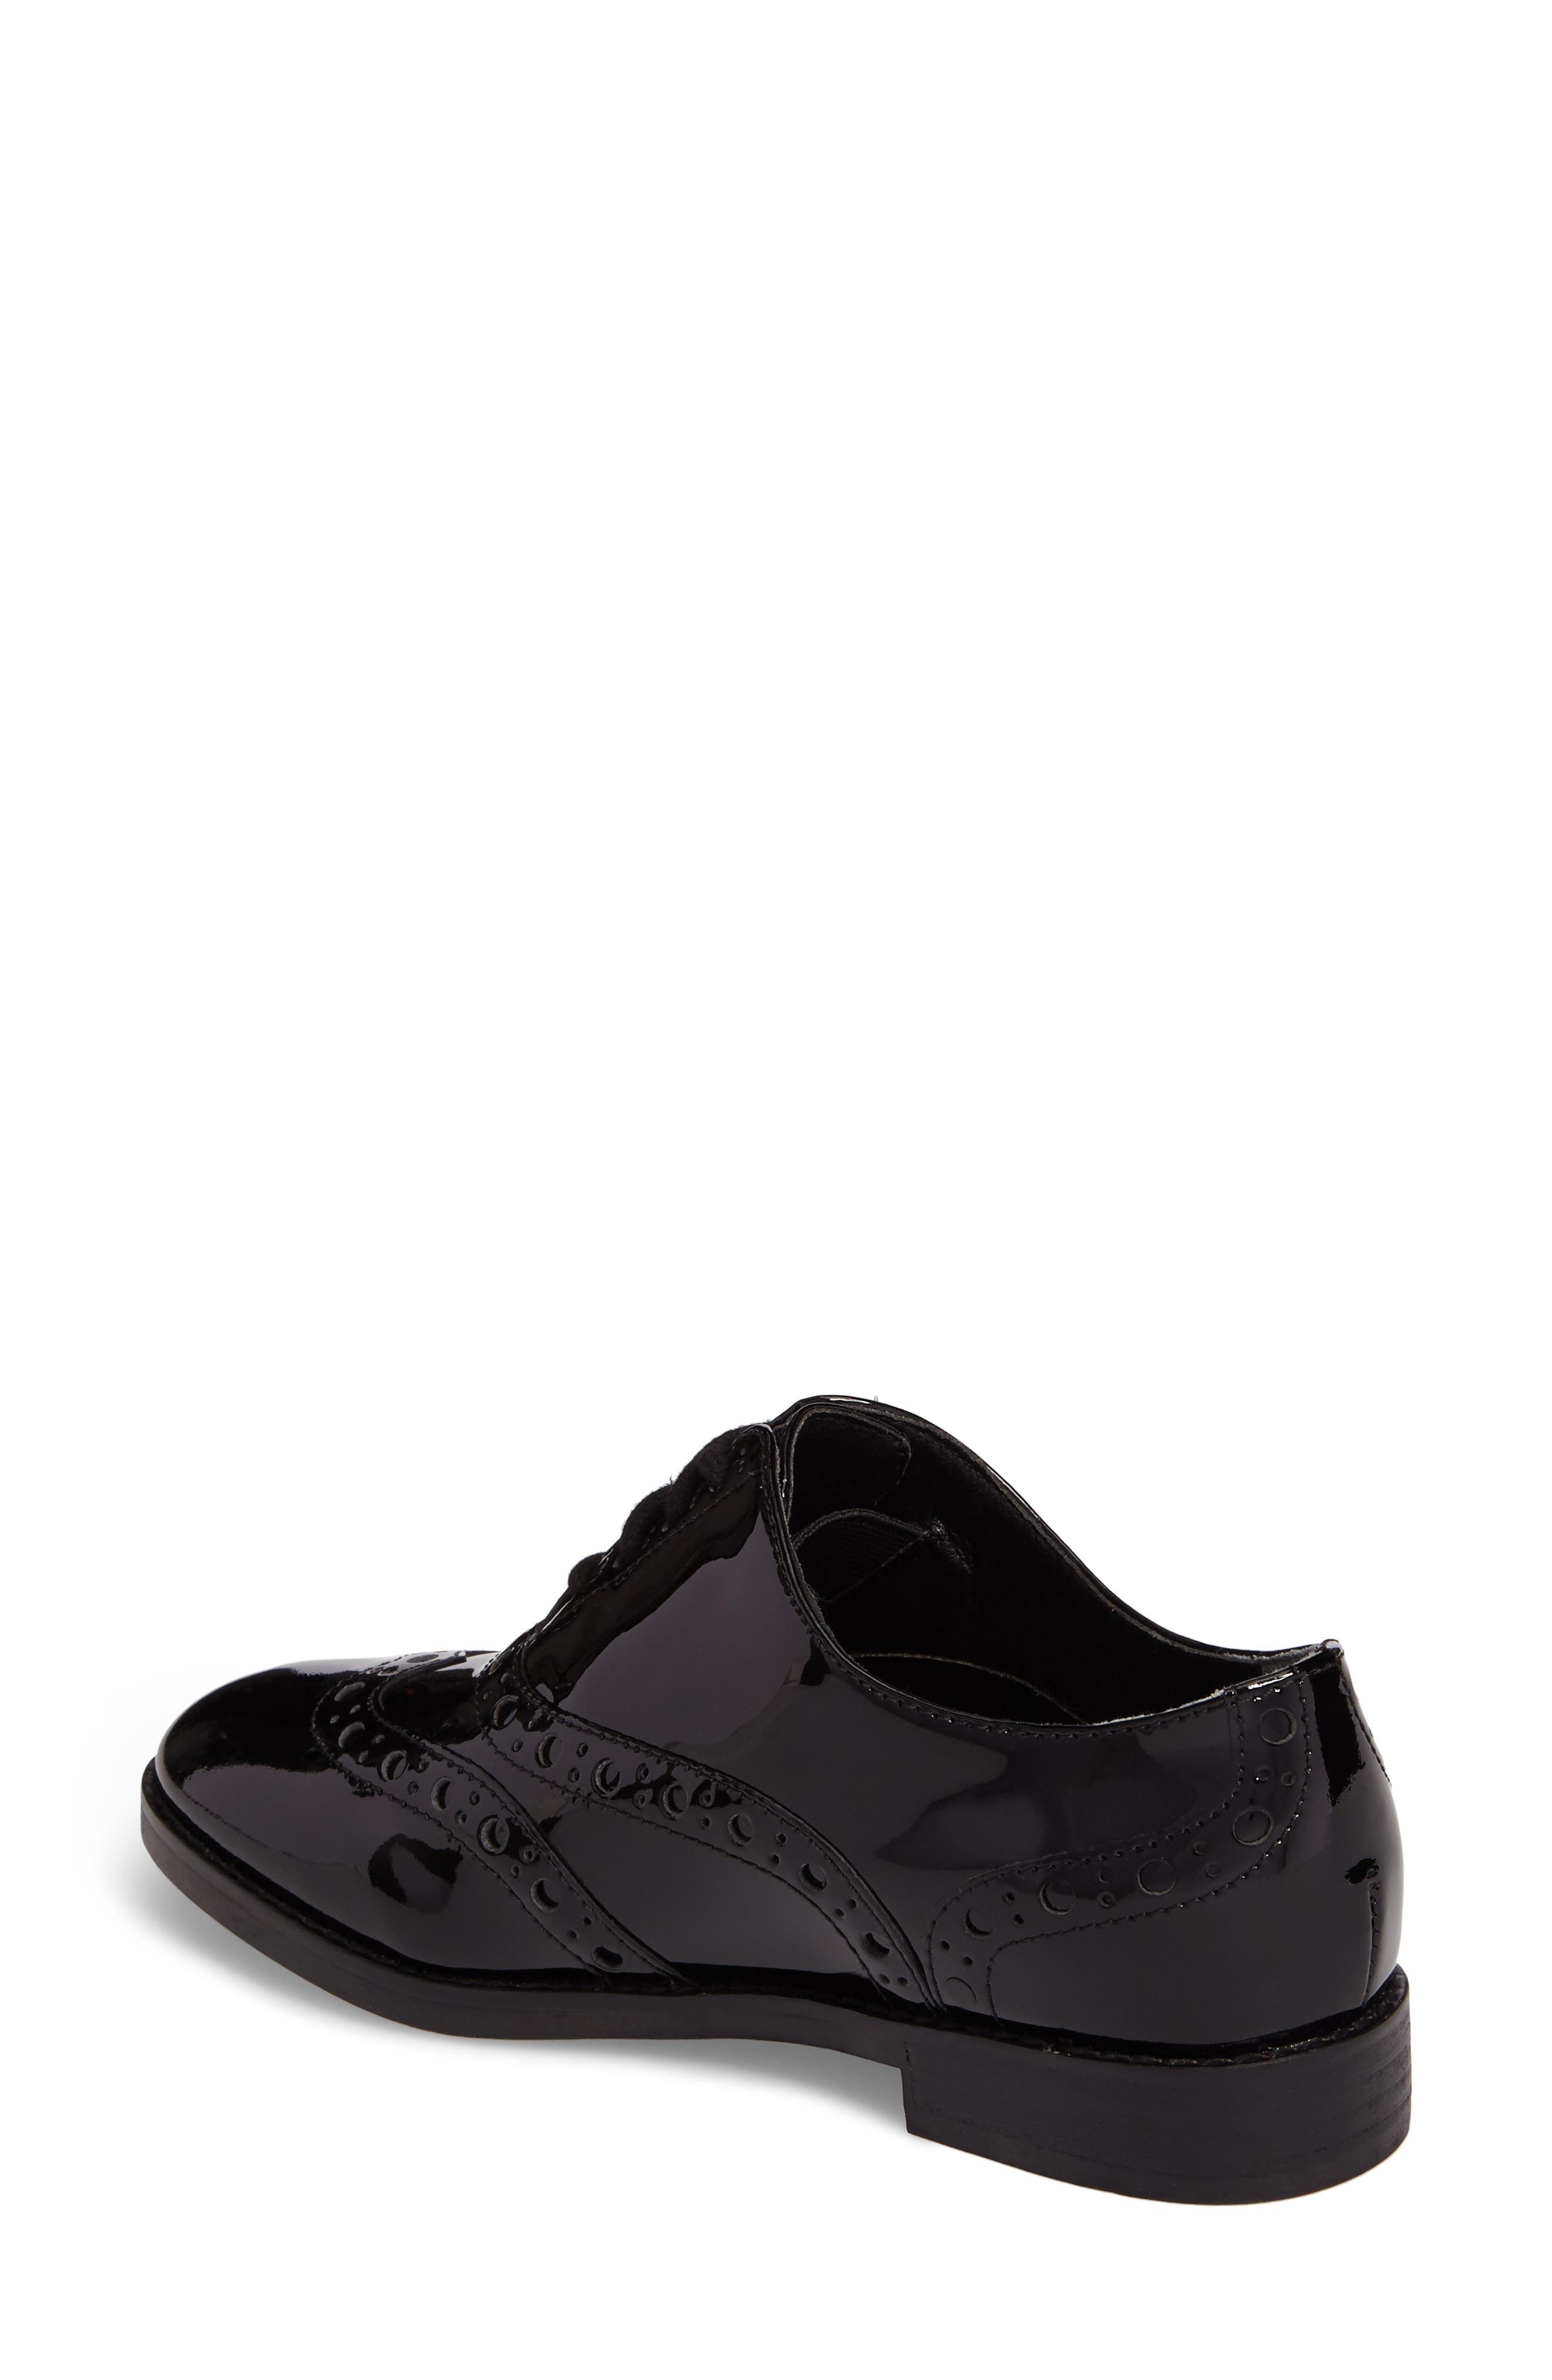 Hadley Wingtip,                             Alternate thumbnail 2, color,                             Black Patent Leather